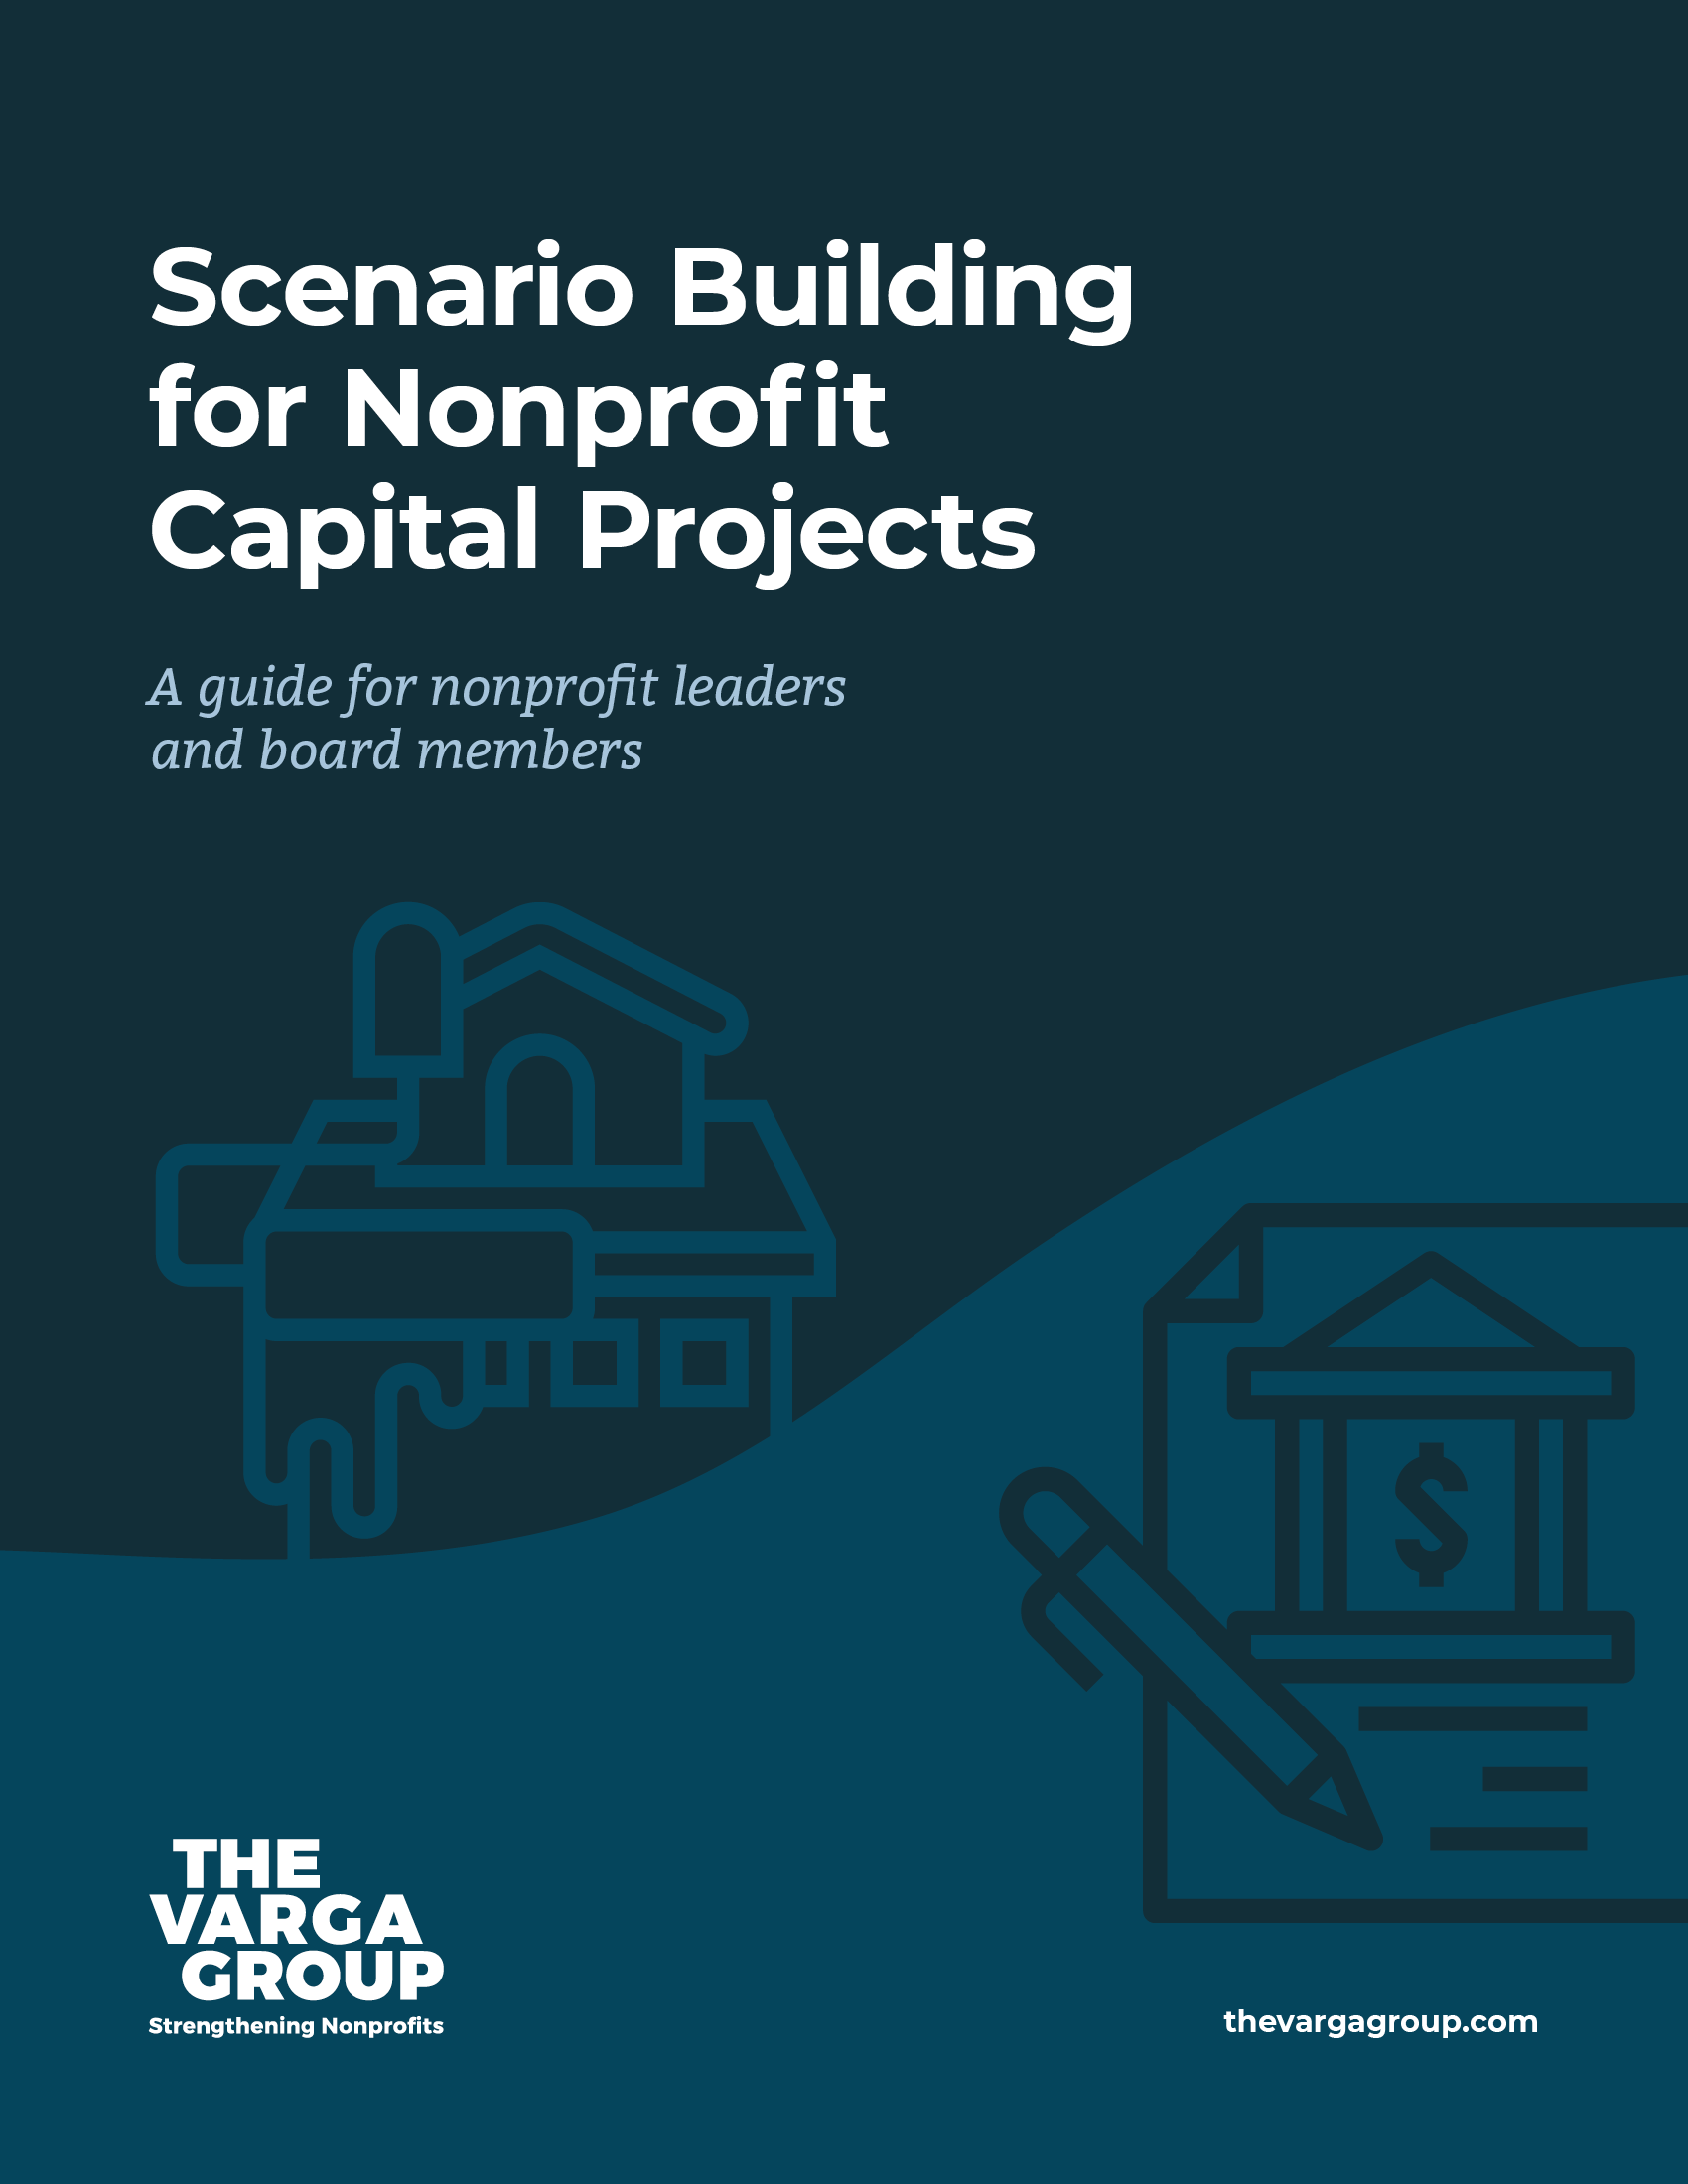 Scenario Building for Nonprofit Capital Projects